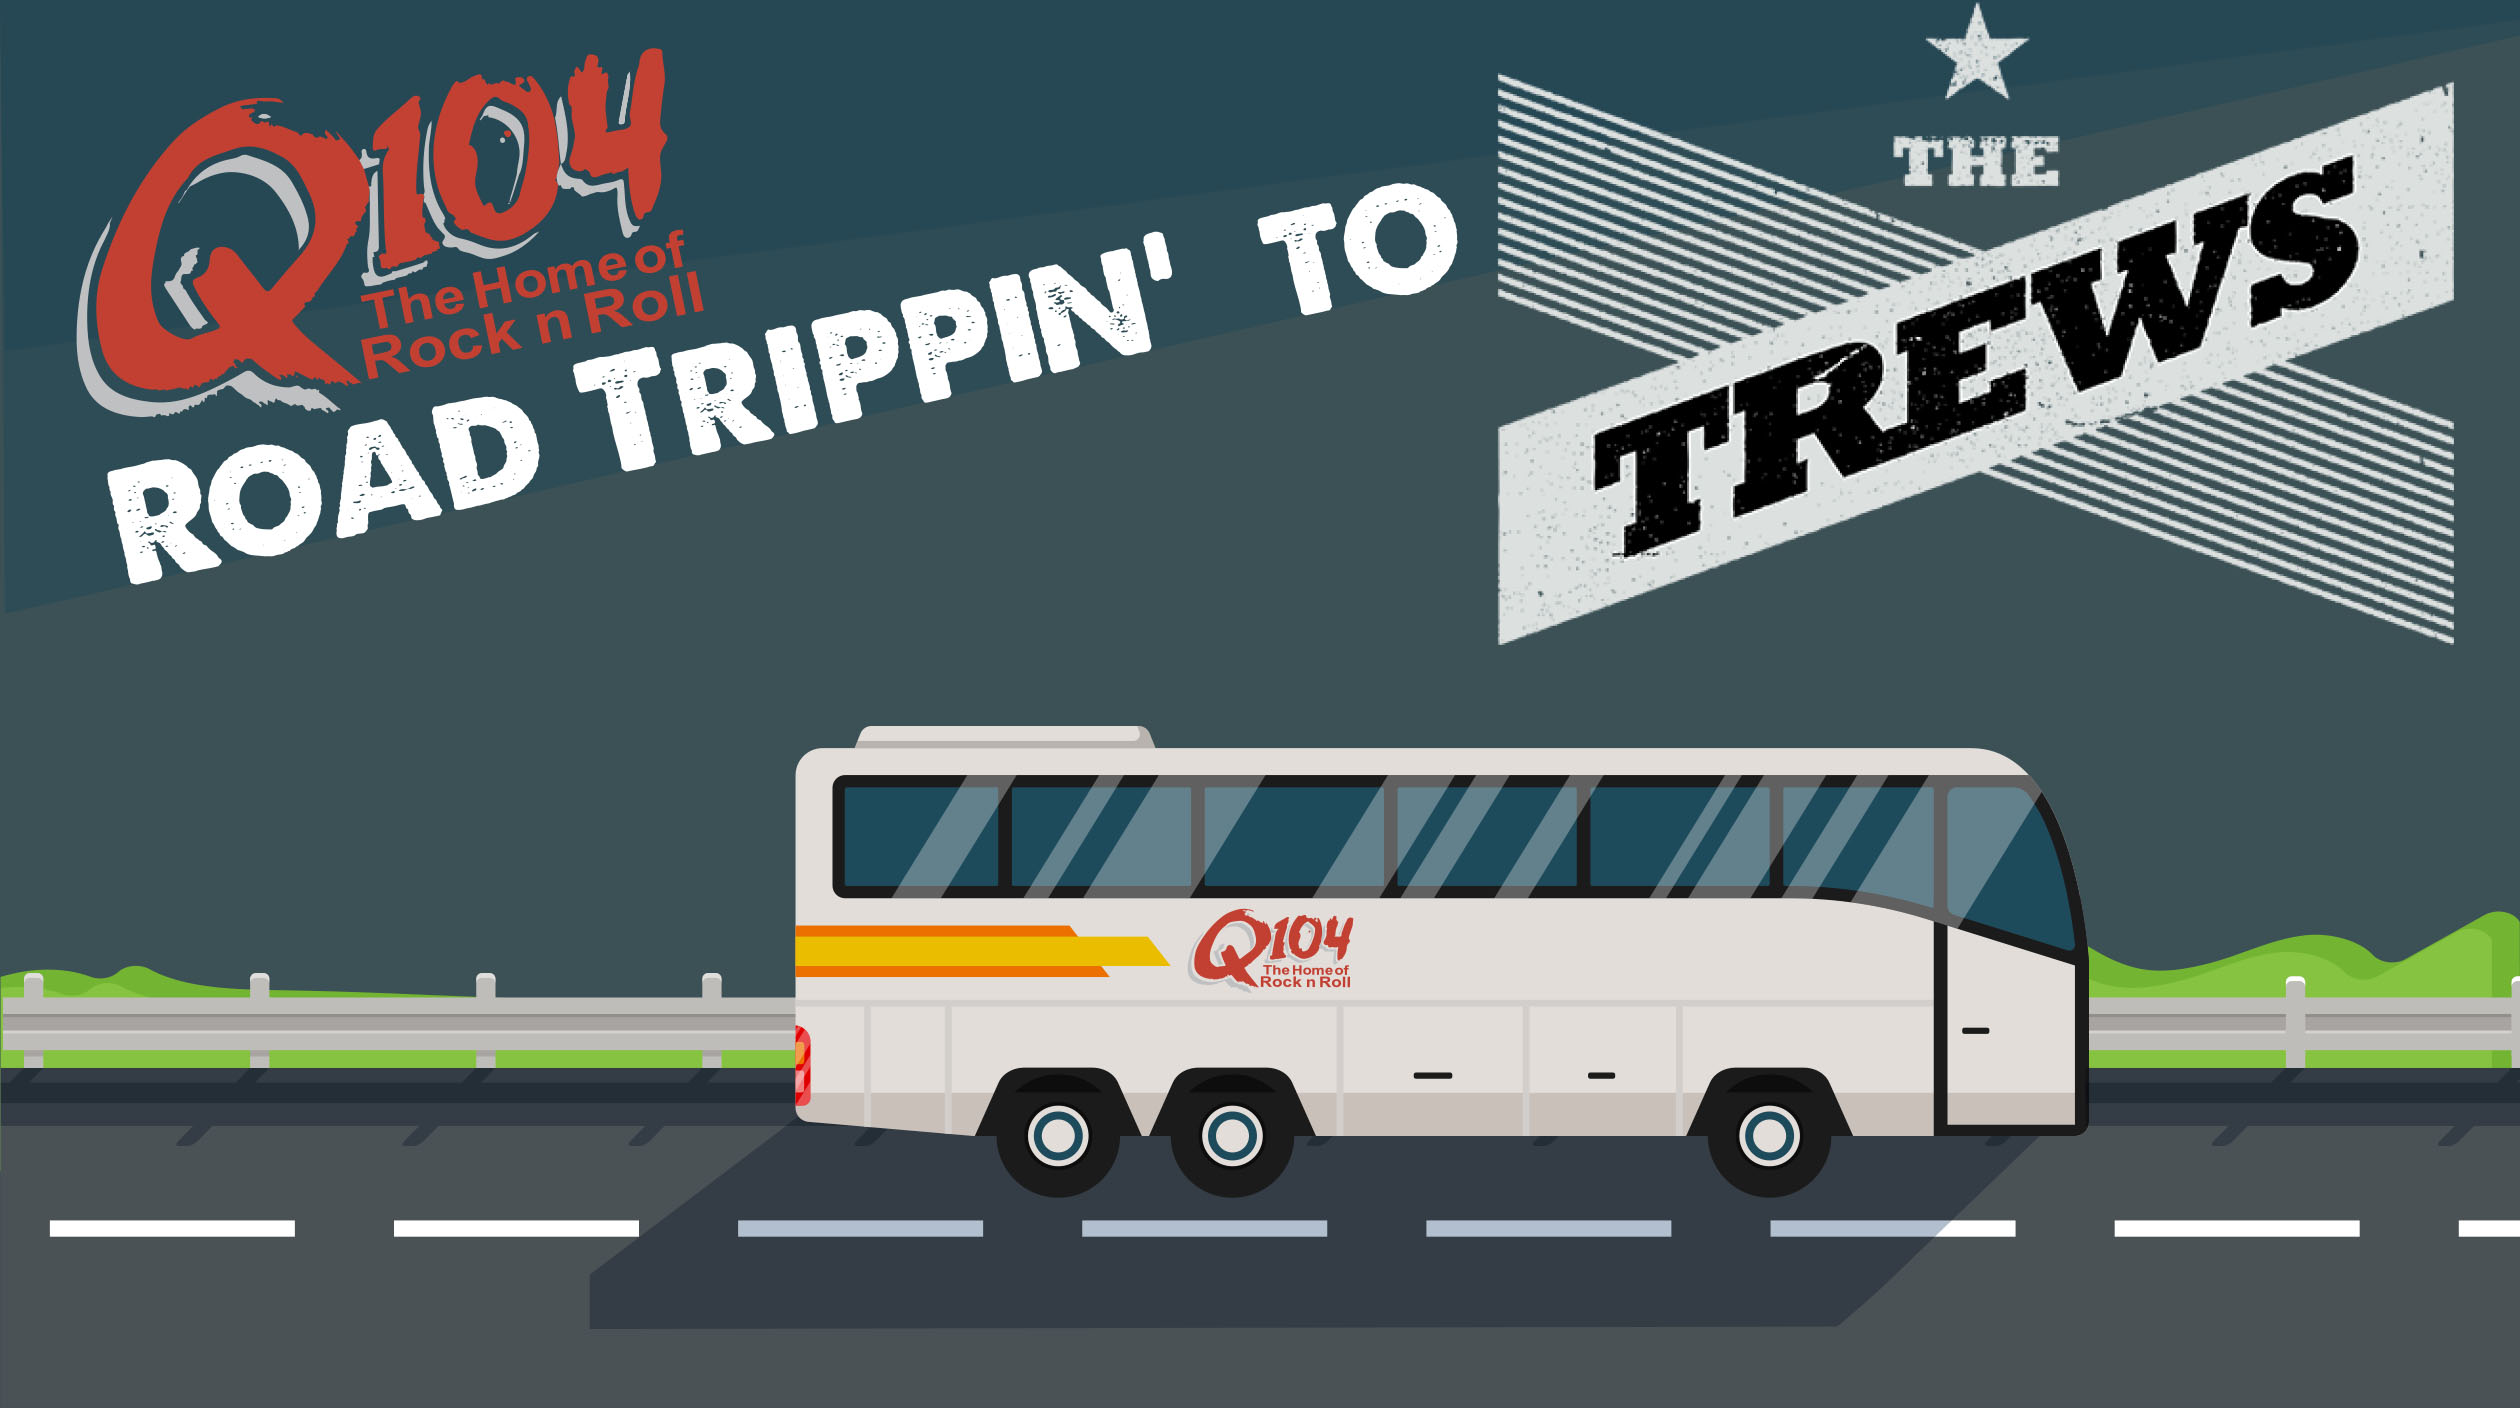 Feature: http://www.q104.ca/q104-road-trippin-to-the-trews/